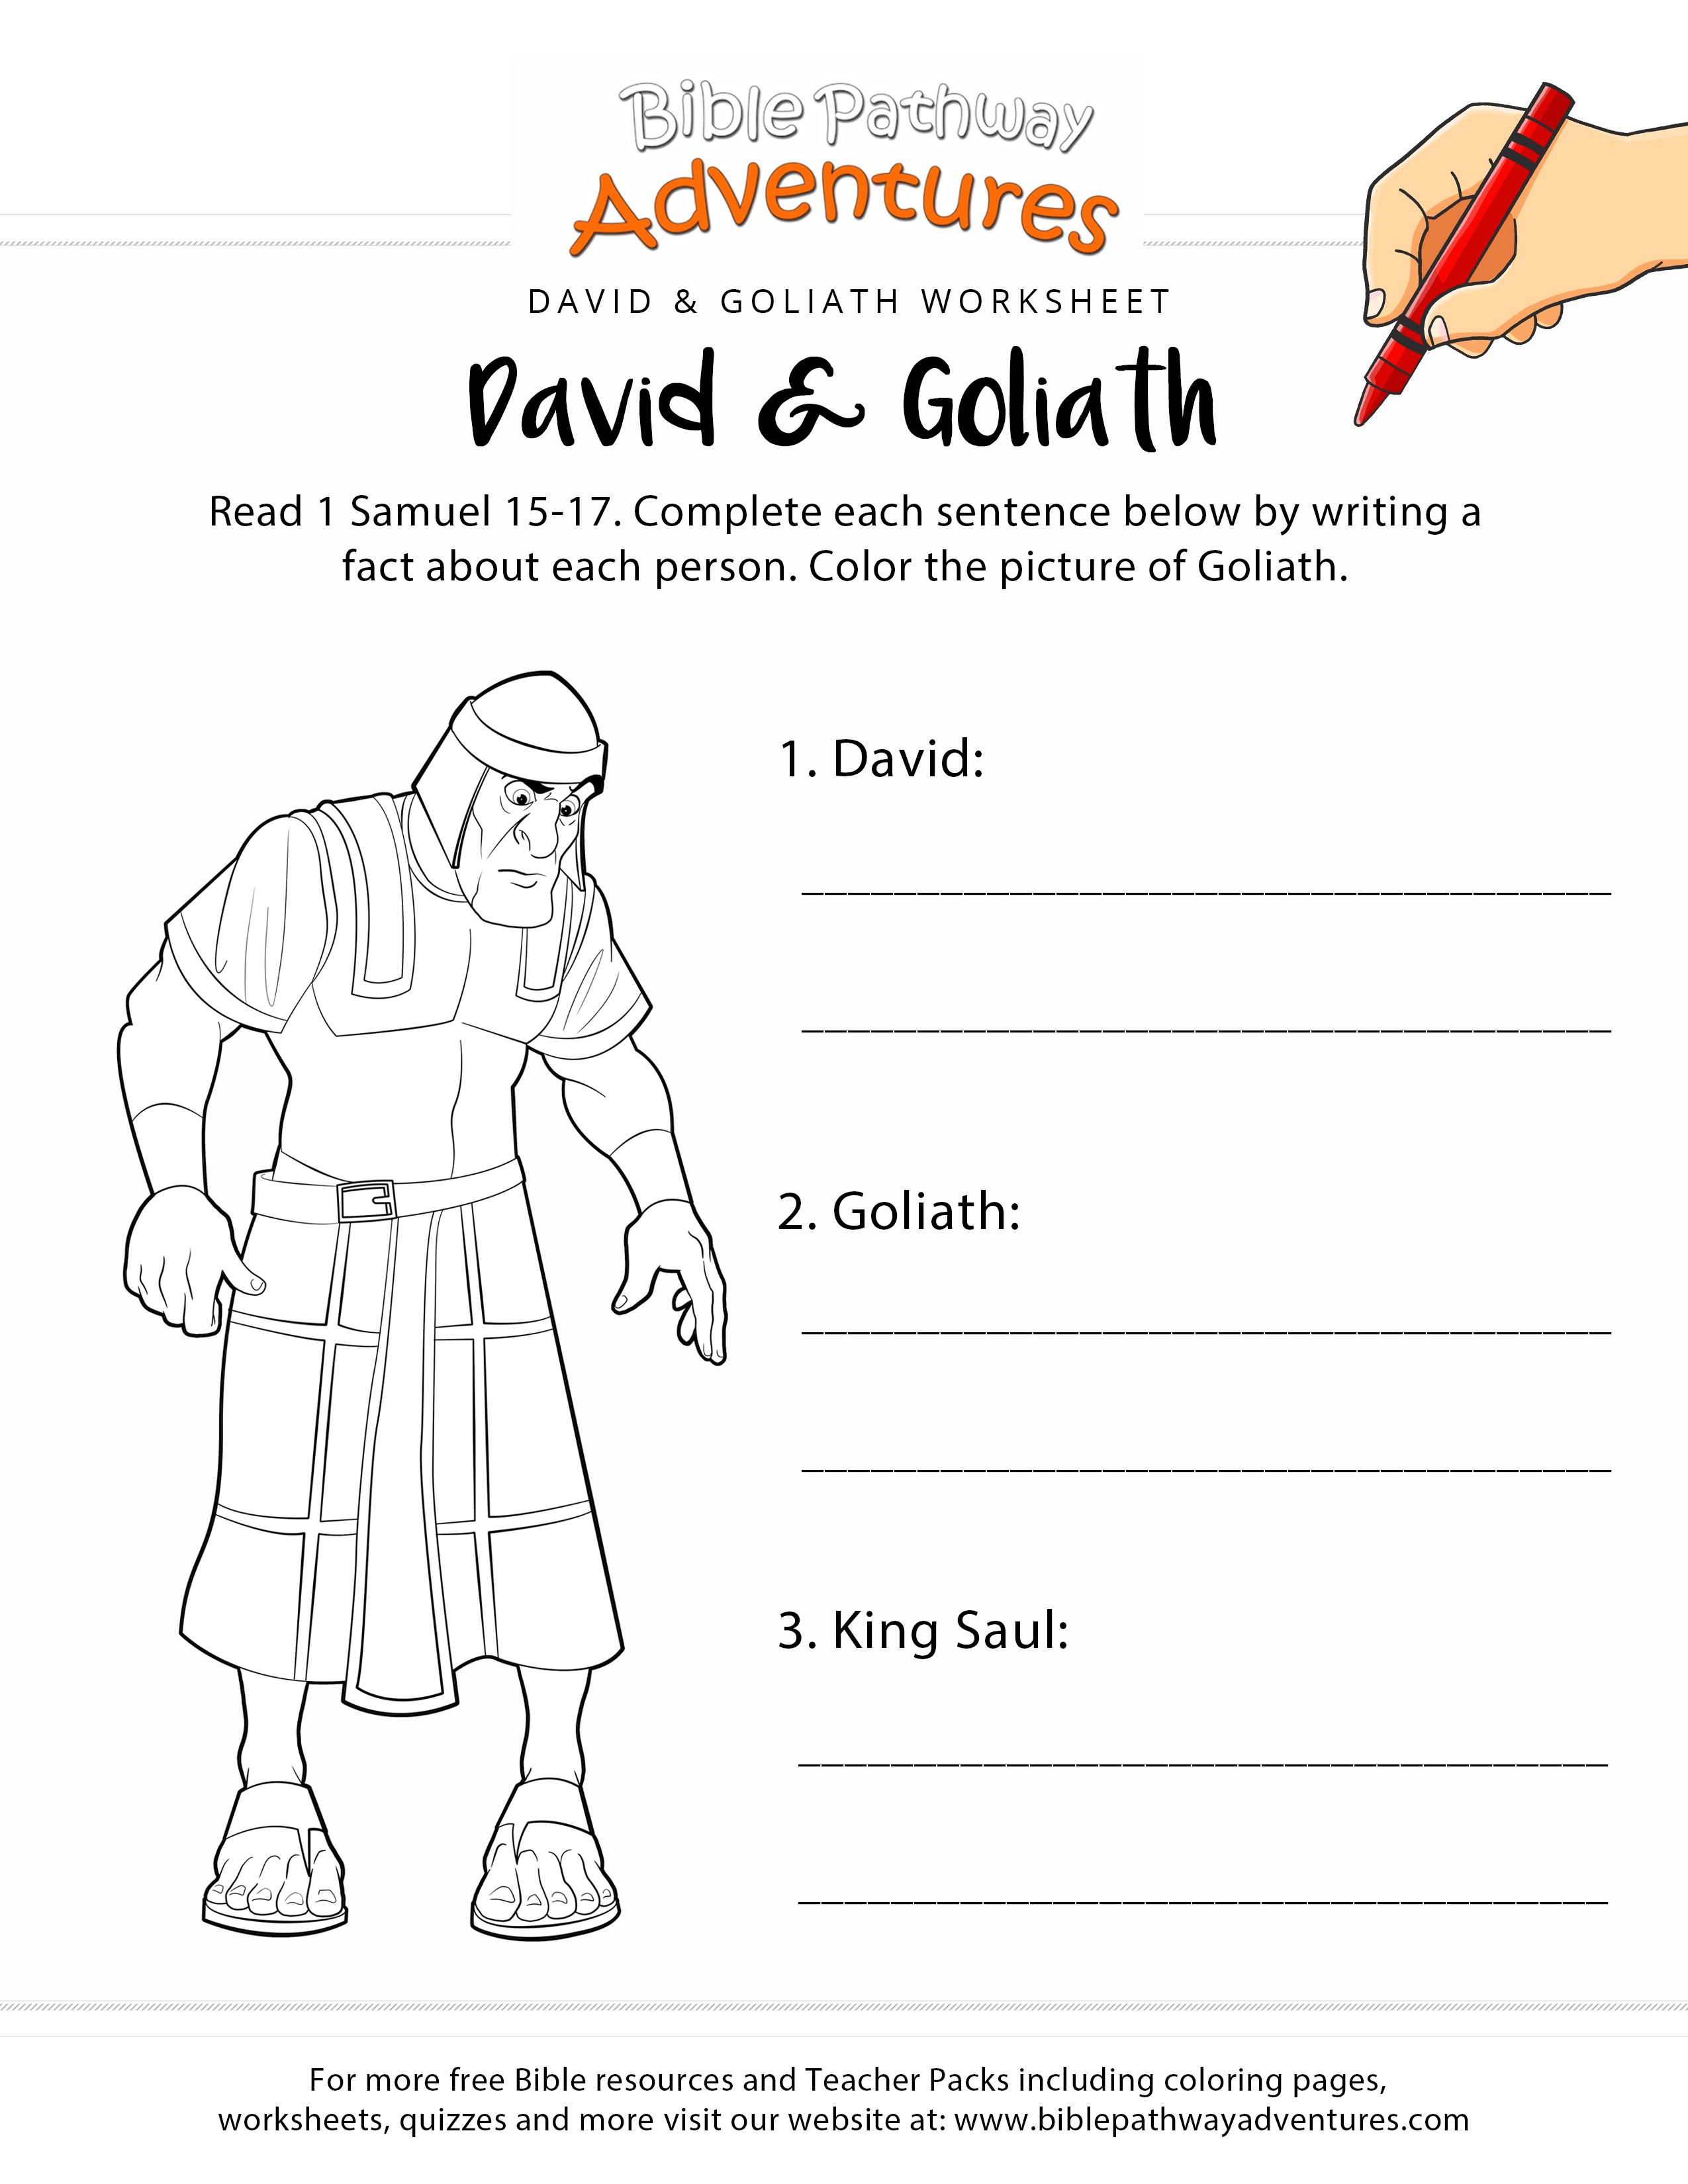 David and goliath free bible worksheet and coloring page printable bible activity sheet for homeschoolers sunday school and sabbath school students